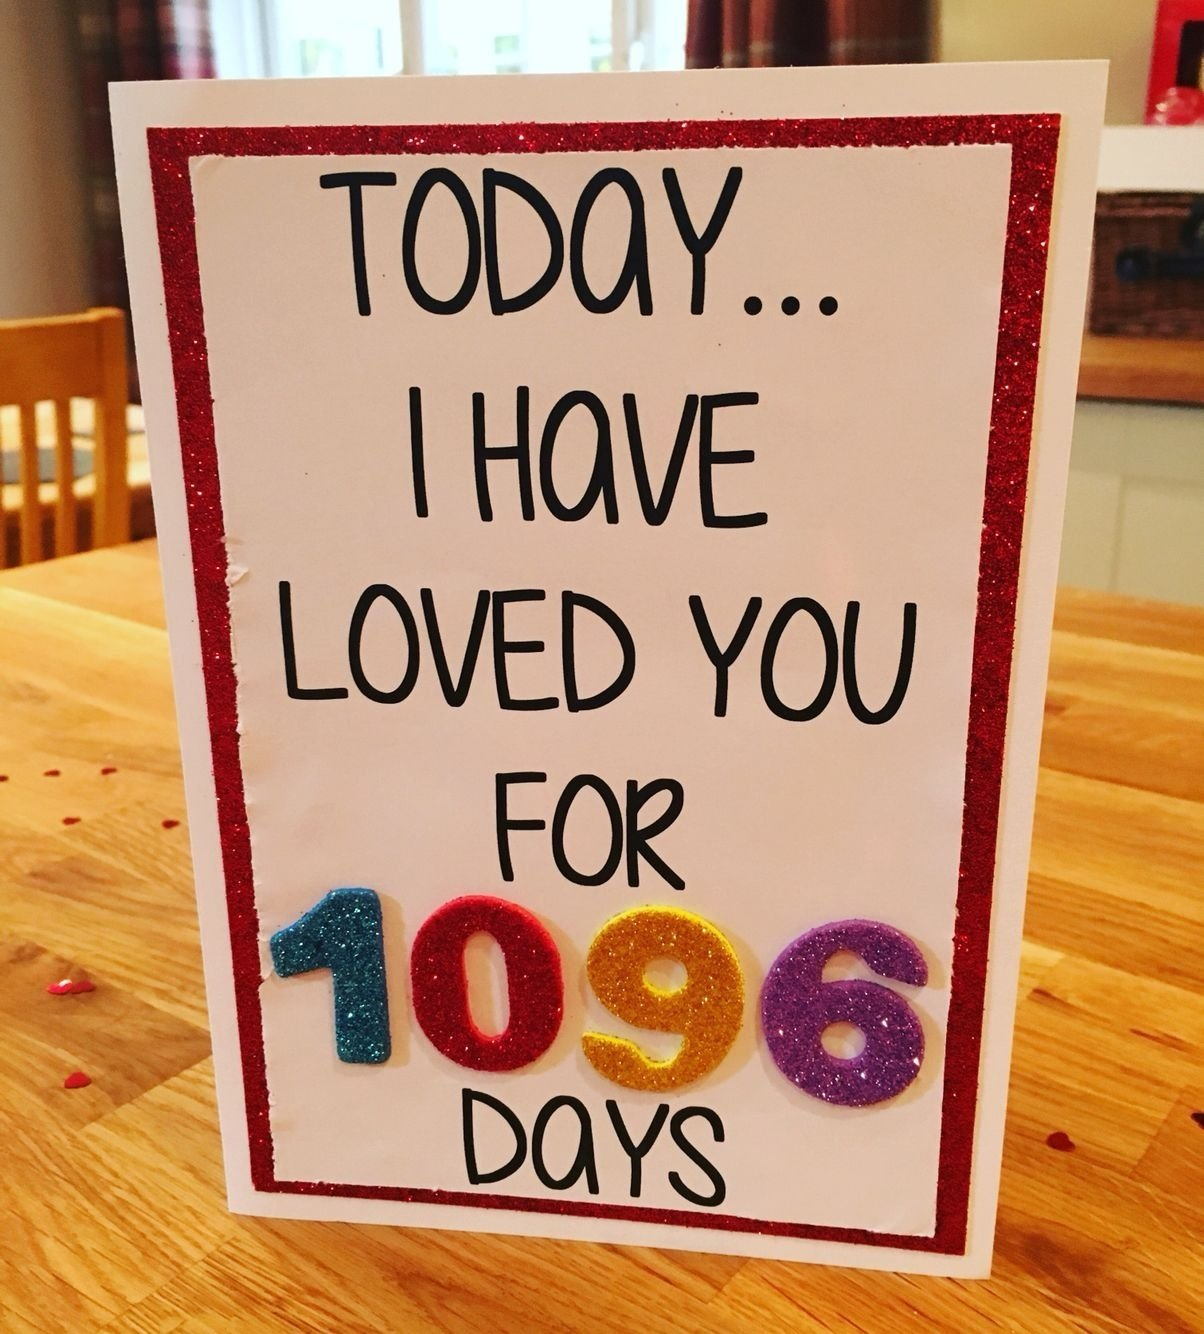 10 Gorgeous 3 Year Anniversary Gift Ideas For Him 3 year anniversary card today i have loved you for 1096 days x 4 2021